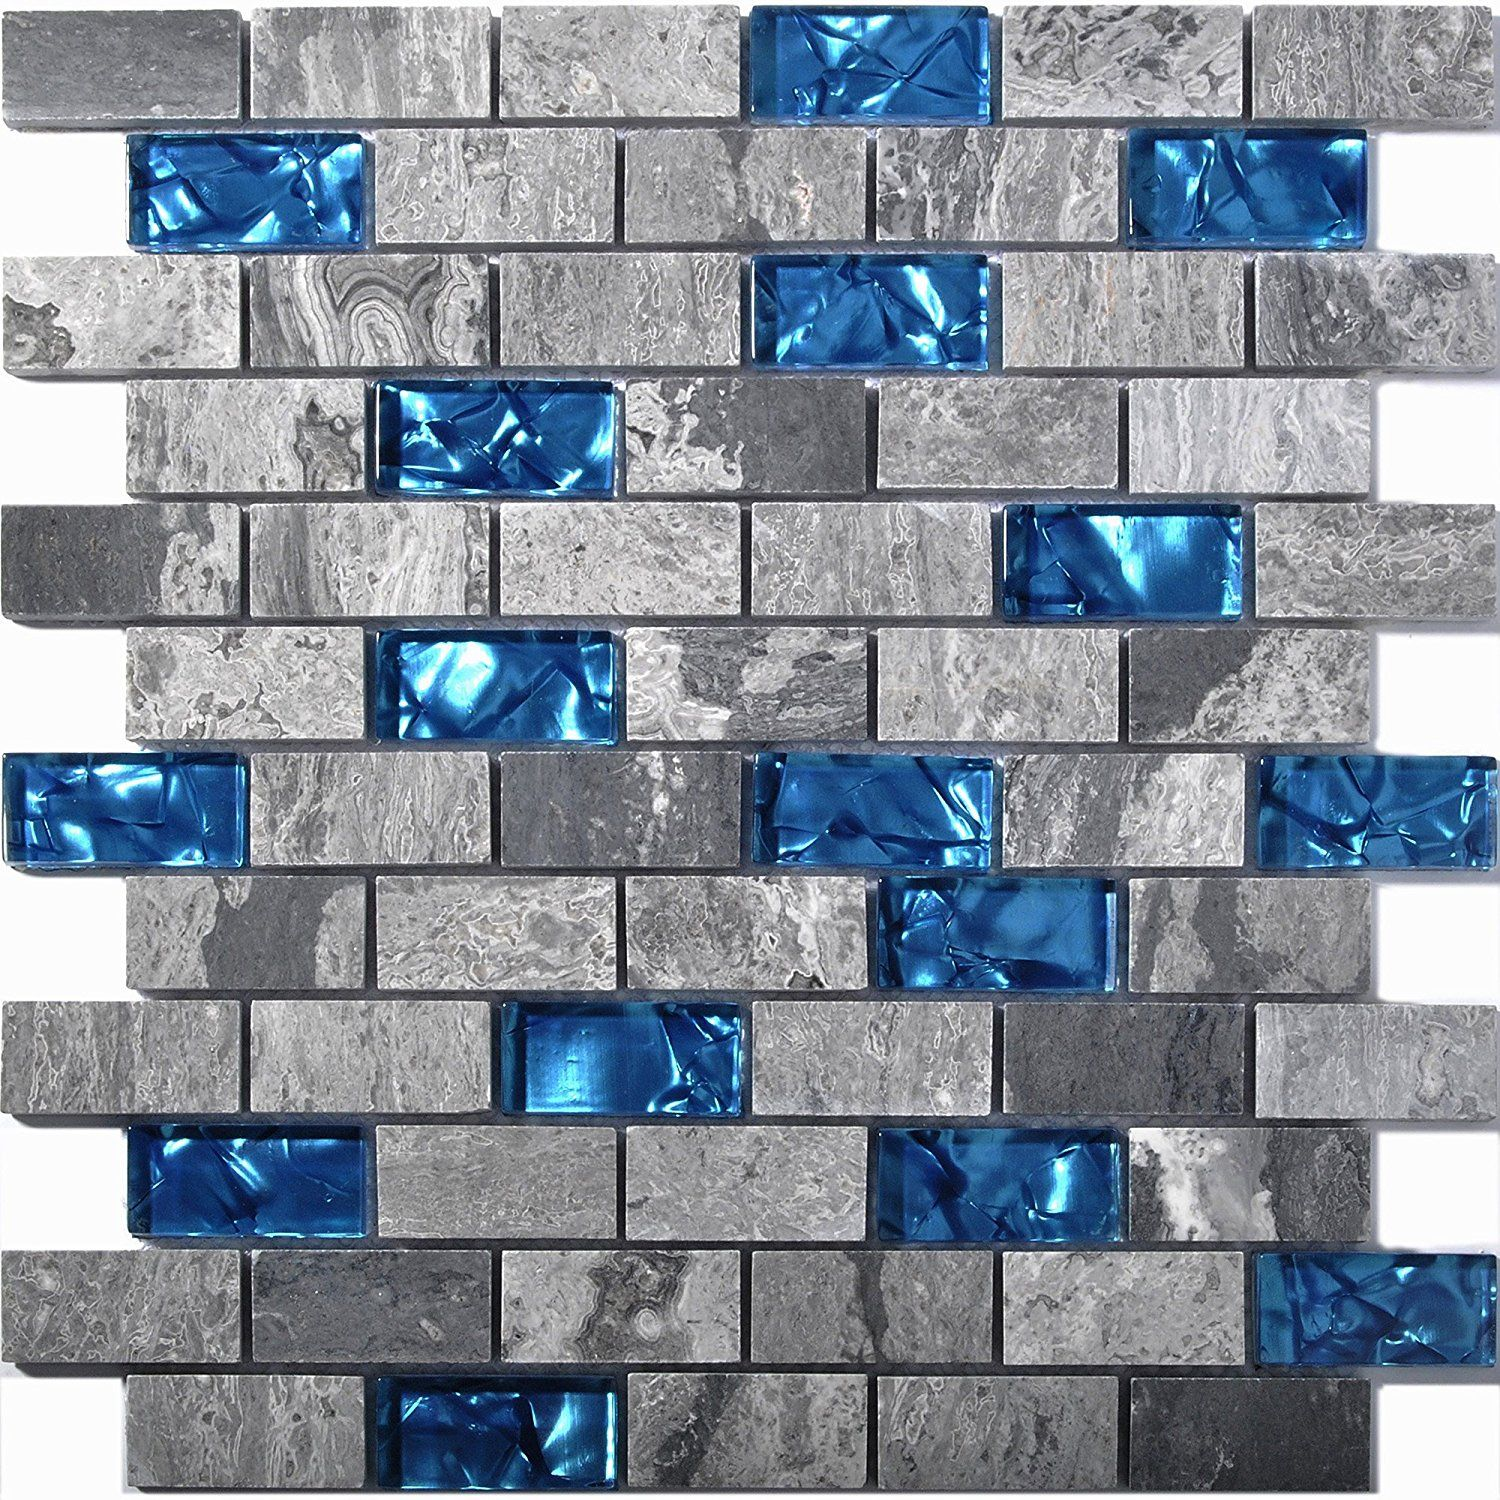 Ocean blue glass tile backsplash grey marble mosaic wave patterns 1 ...